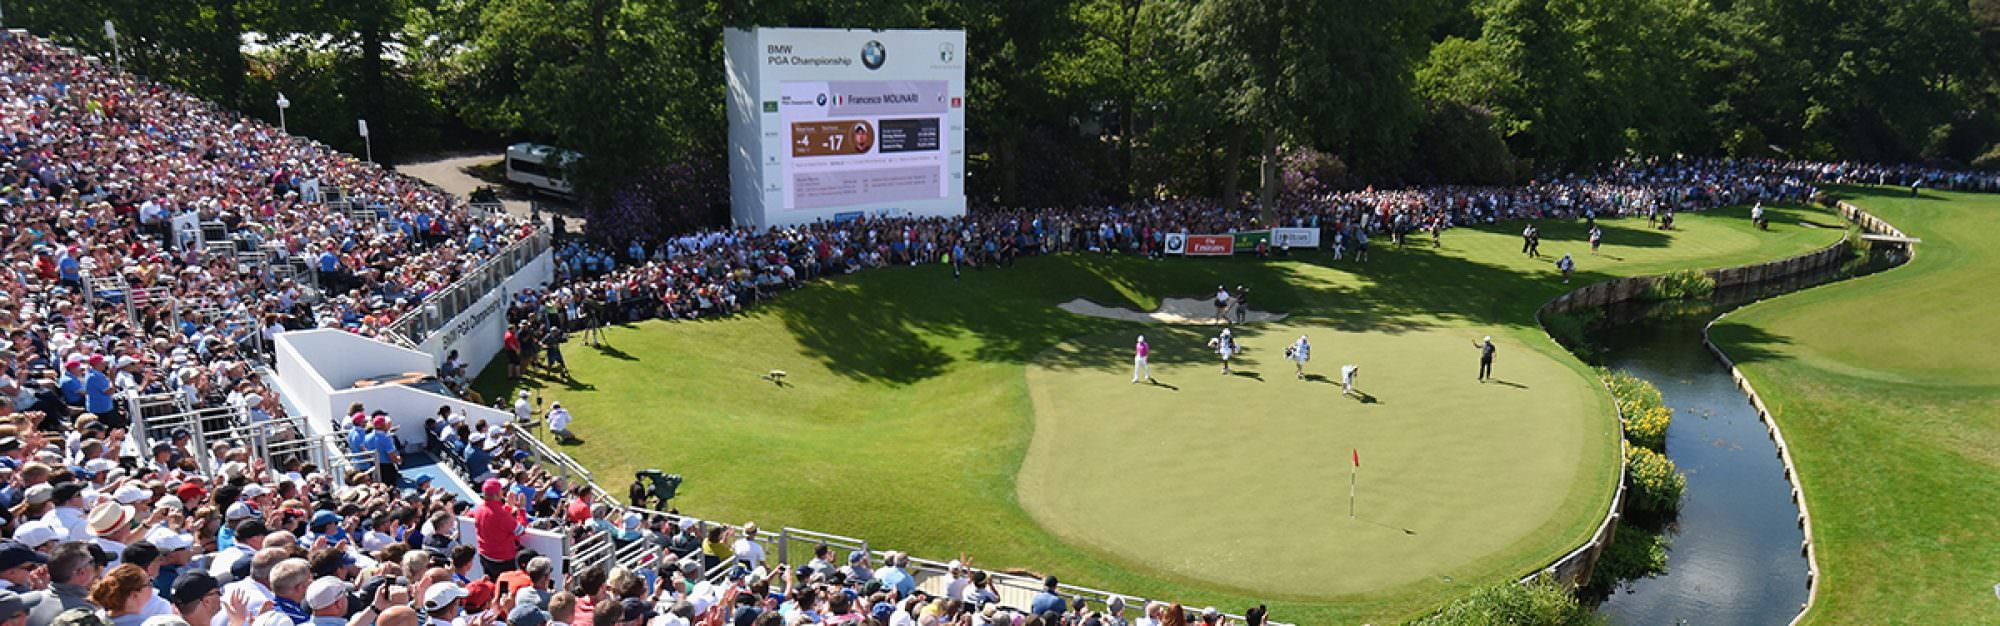 BMW PGA Championship 2021 preview: TV times and betting tips